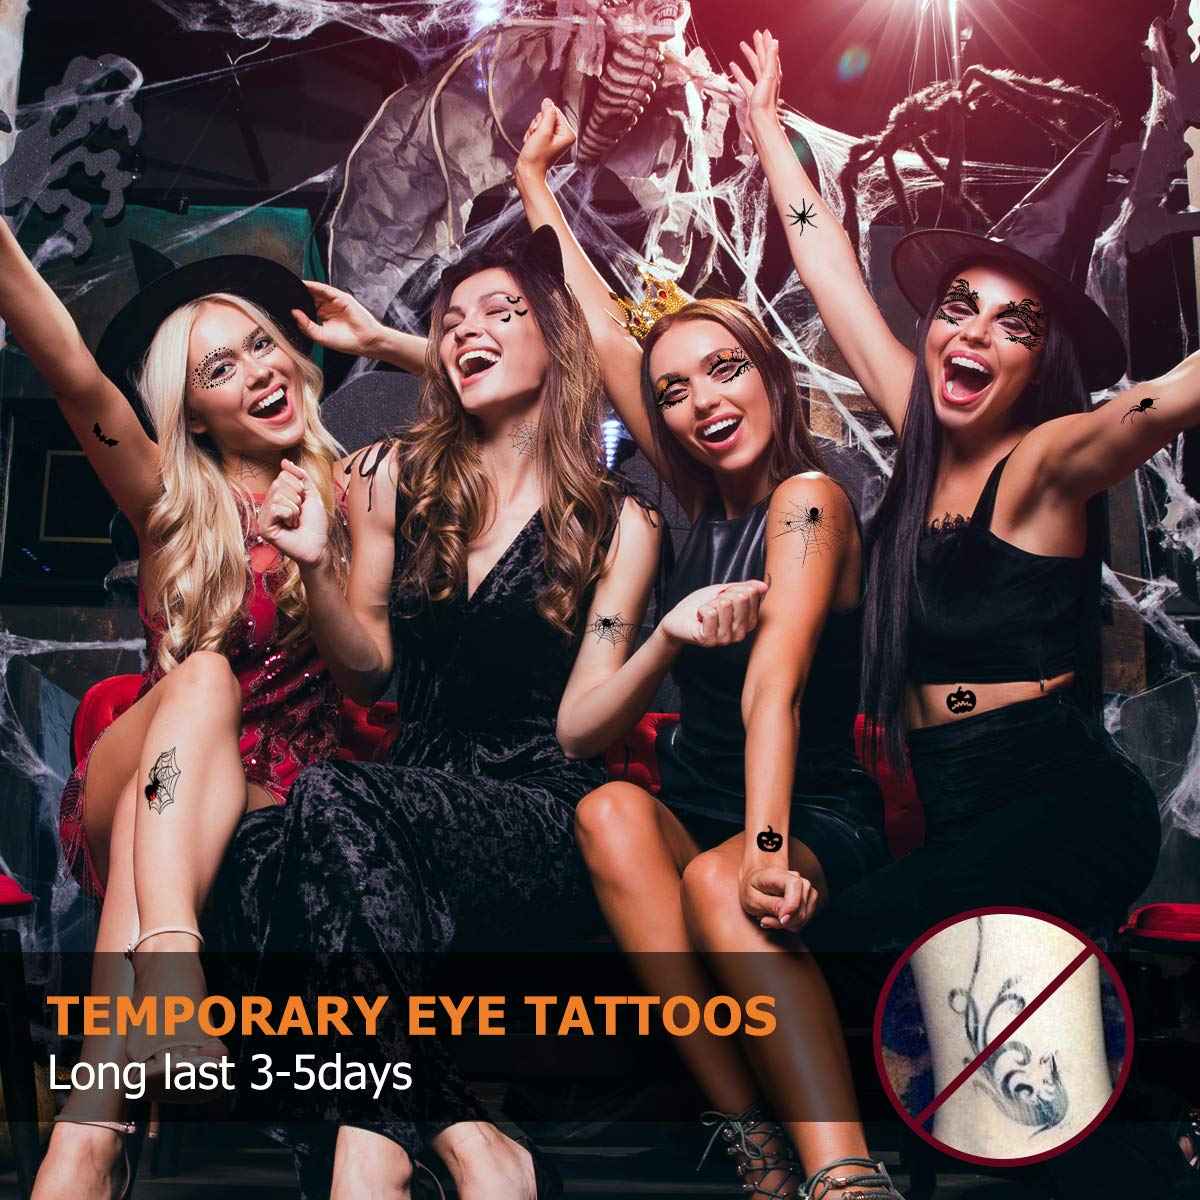 Temporary Tattoos, 11 Eye Fake Tattoos and 2 Spider Temporary Stickers for Full Body Decals